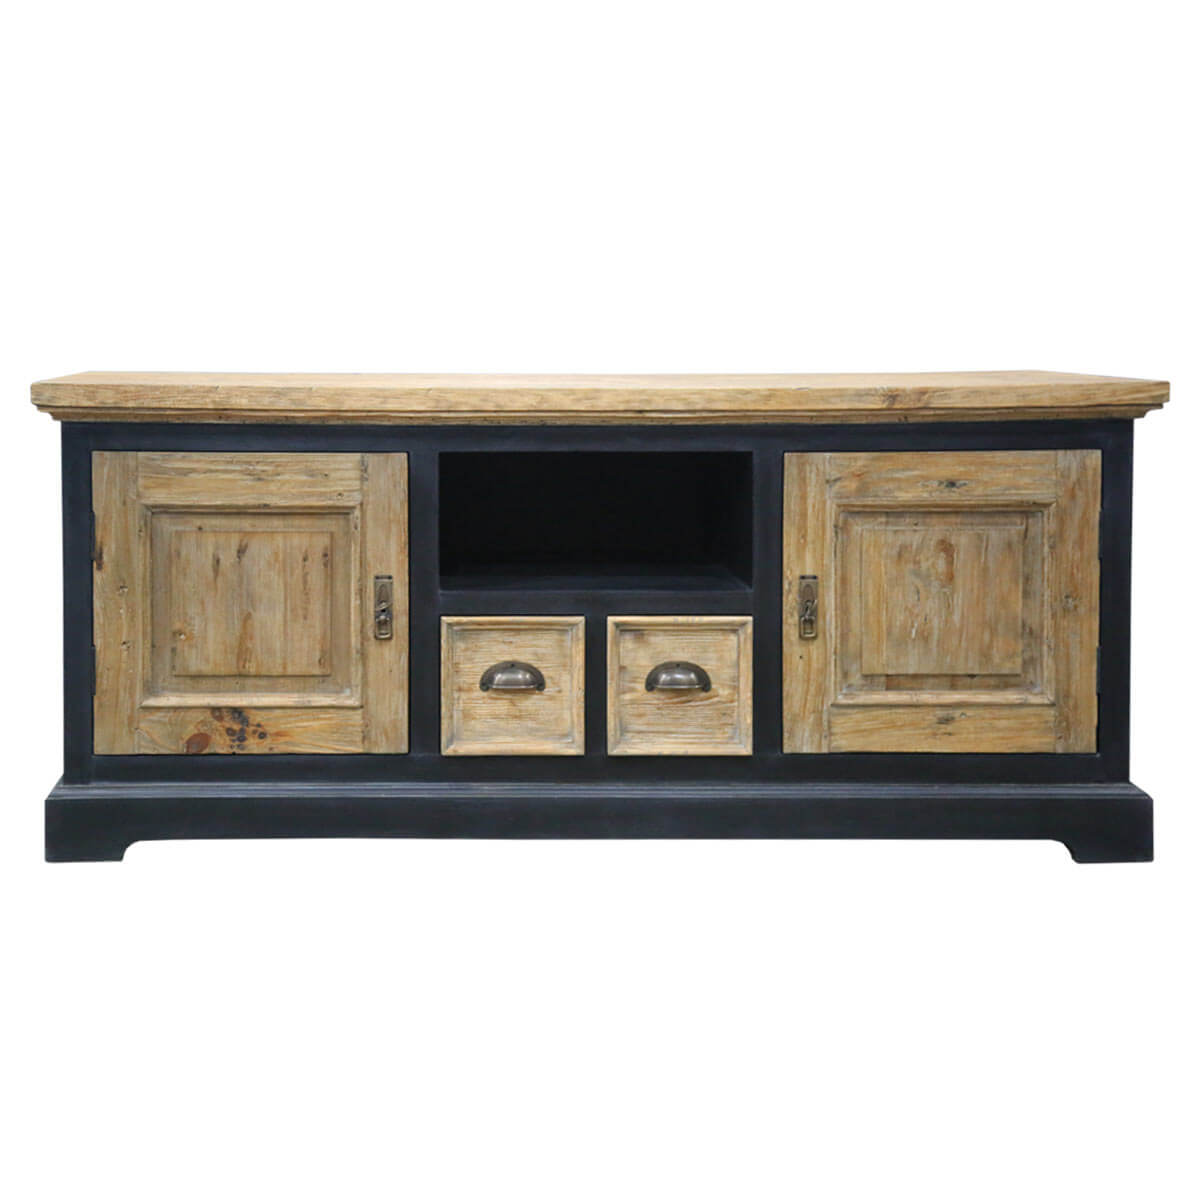 Carterville Rustic Teak And Mahogany Wood 2 Drawer 2 Cabinet Tv Stand